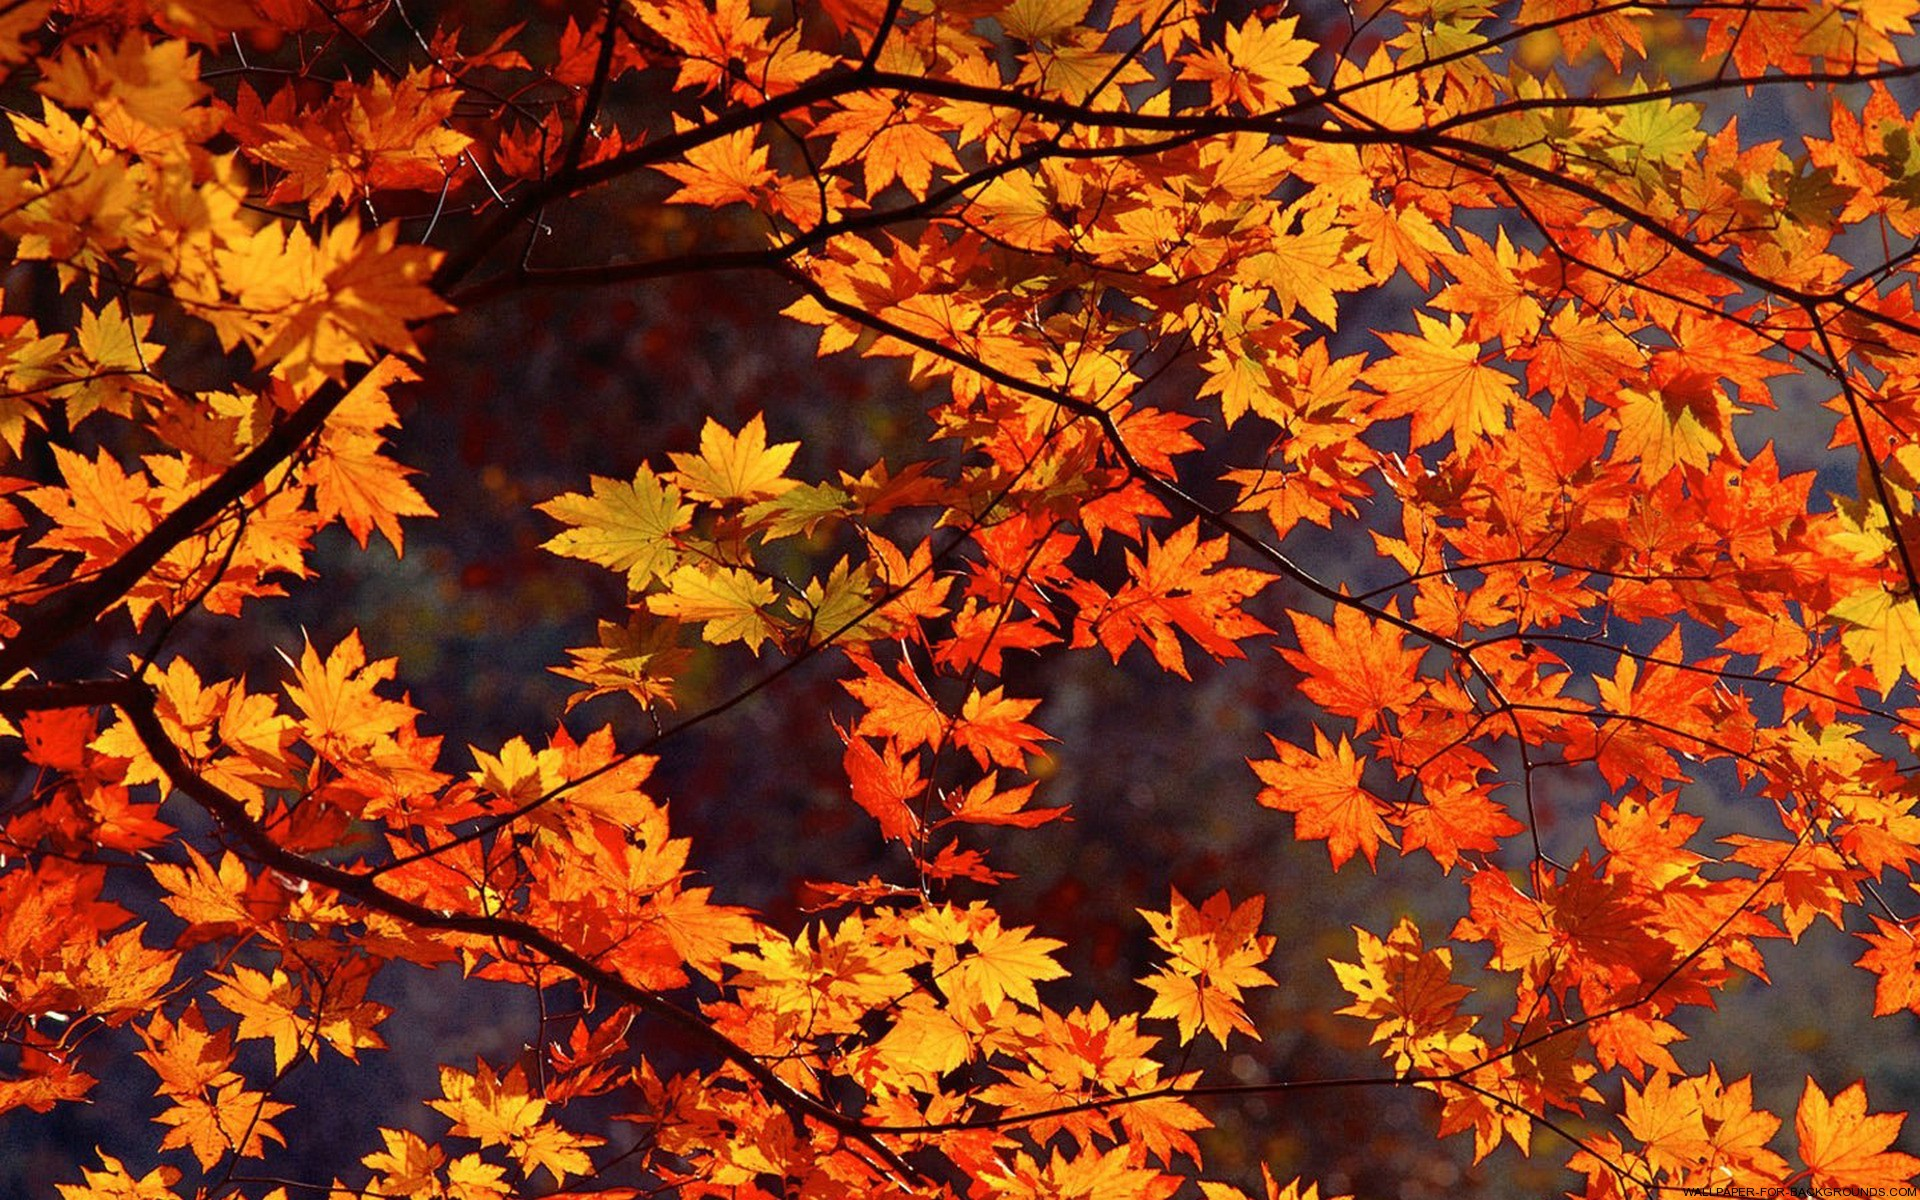 Autumn Leaves Wallpapers High Quality